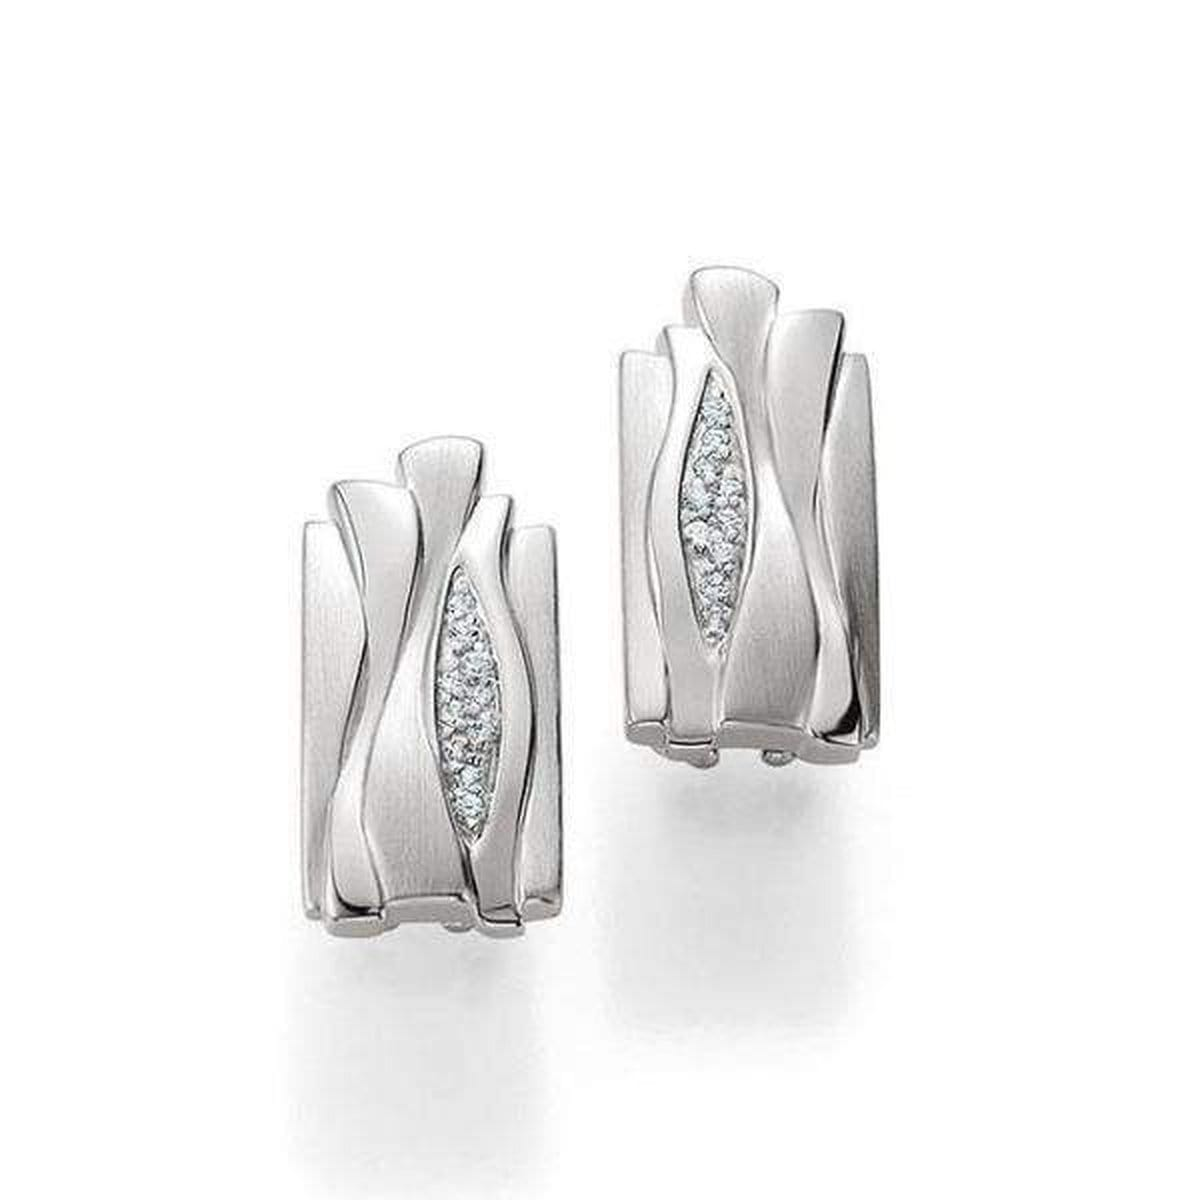 Rhodium Plated Sterling Silver White Sapphire Earrings - 02/03668-Breuning-Renee Taylor Gallery